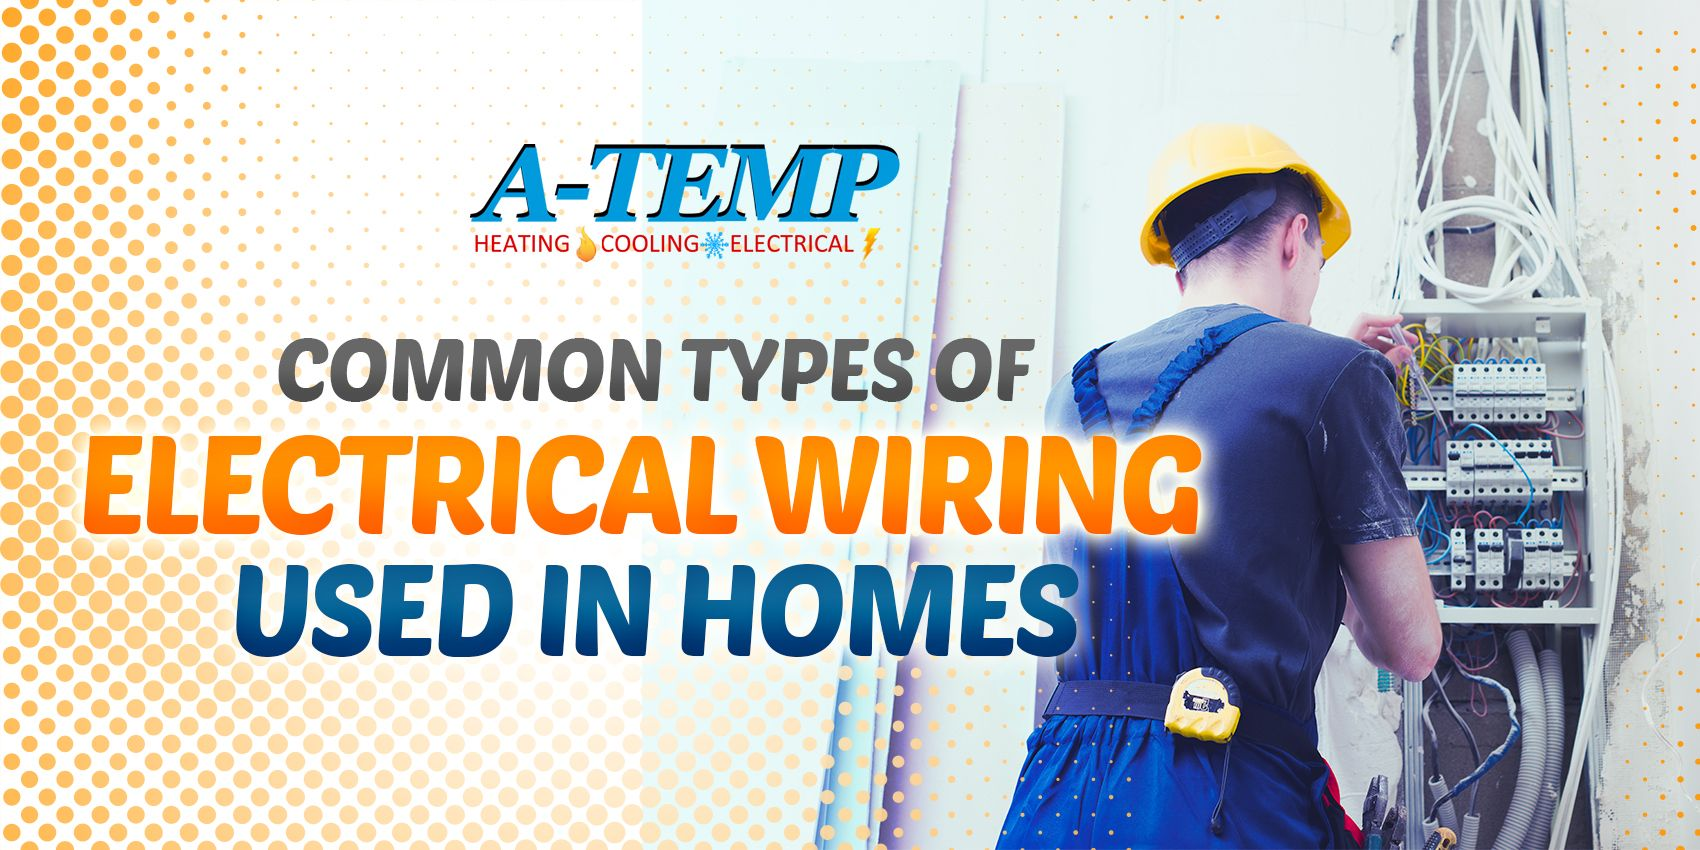 Common Types of Electrical Wiring Used in Homes on types of electrical wire splices, earthing system, electrical conduit, types of parallel circuits, types of starters, distribution board, national electrical code, home wiring, types of portable cord, electric motor, wiring diagram, extension cord, three-phase electric power, types of instrumentation, types of exhaust system, electrical engineering, types of plumbing materials, alternating current, types of electrical wires and their uses, types of piping, types of heating systems, types of electrical conductors, types of conduit, junction box, types of fuel filters, types of electrical power wire, types of circuit breaker, knob and tube wiring, types of concrete work, types of electrical wire sheathing, ground and neutral, types of electrical connectors, types of romex, types of electrical outlets, electric power transmission, circuit breaker, power cable,